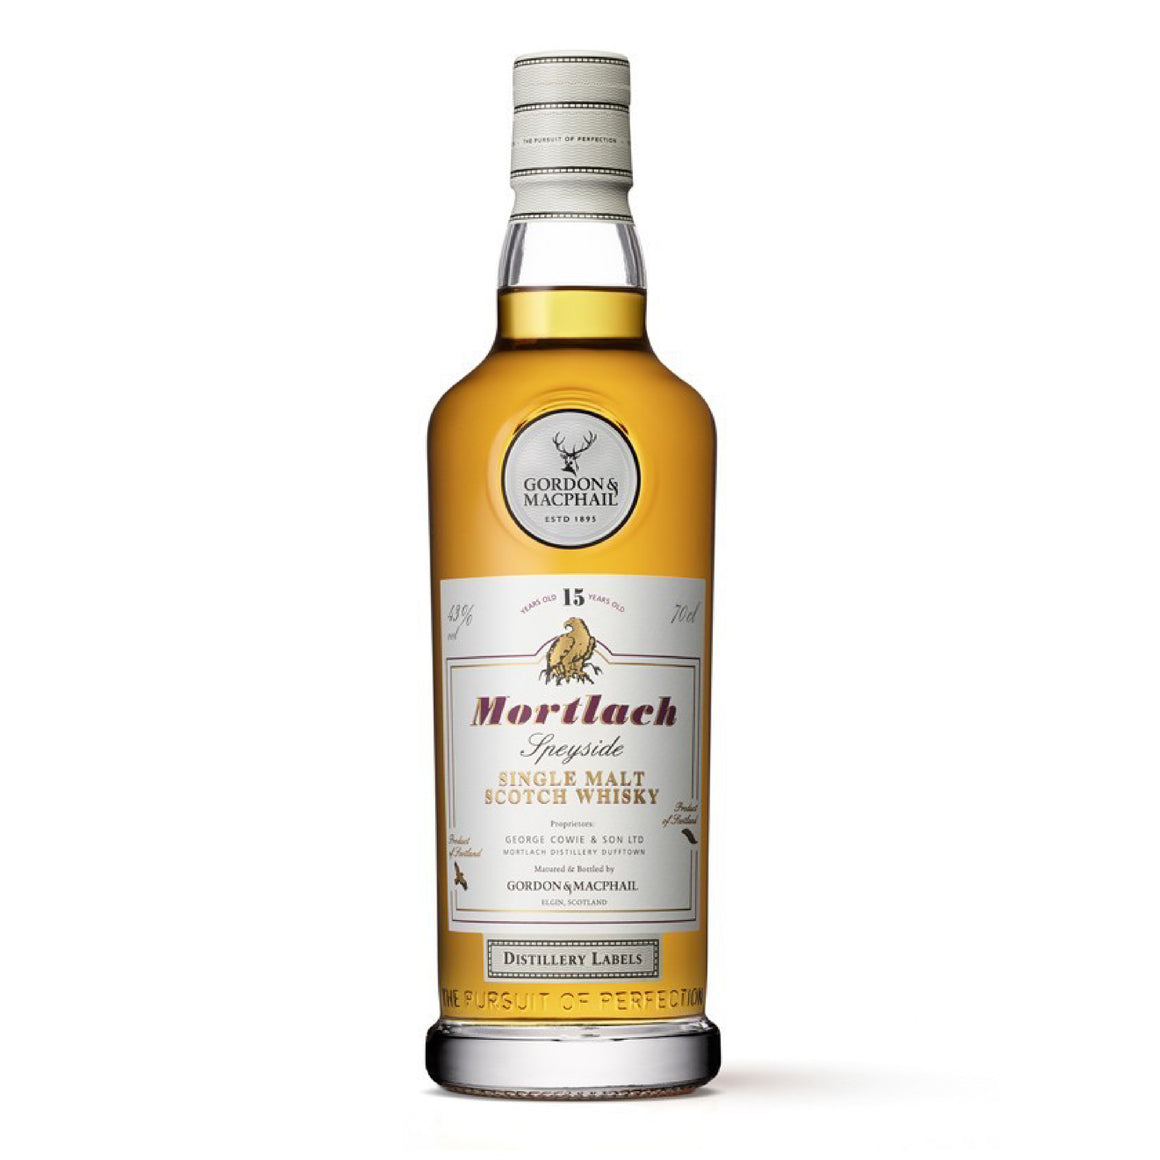 MORTLACH 15 YRS SINGLE MALT WHISKY